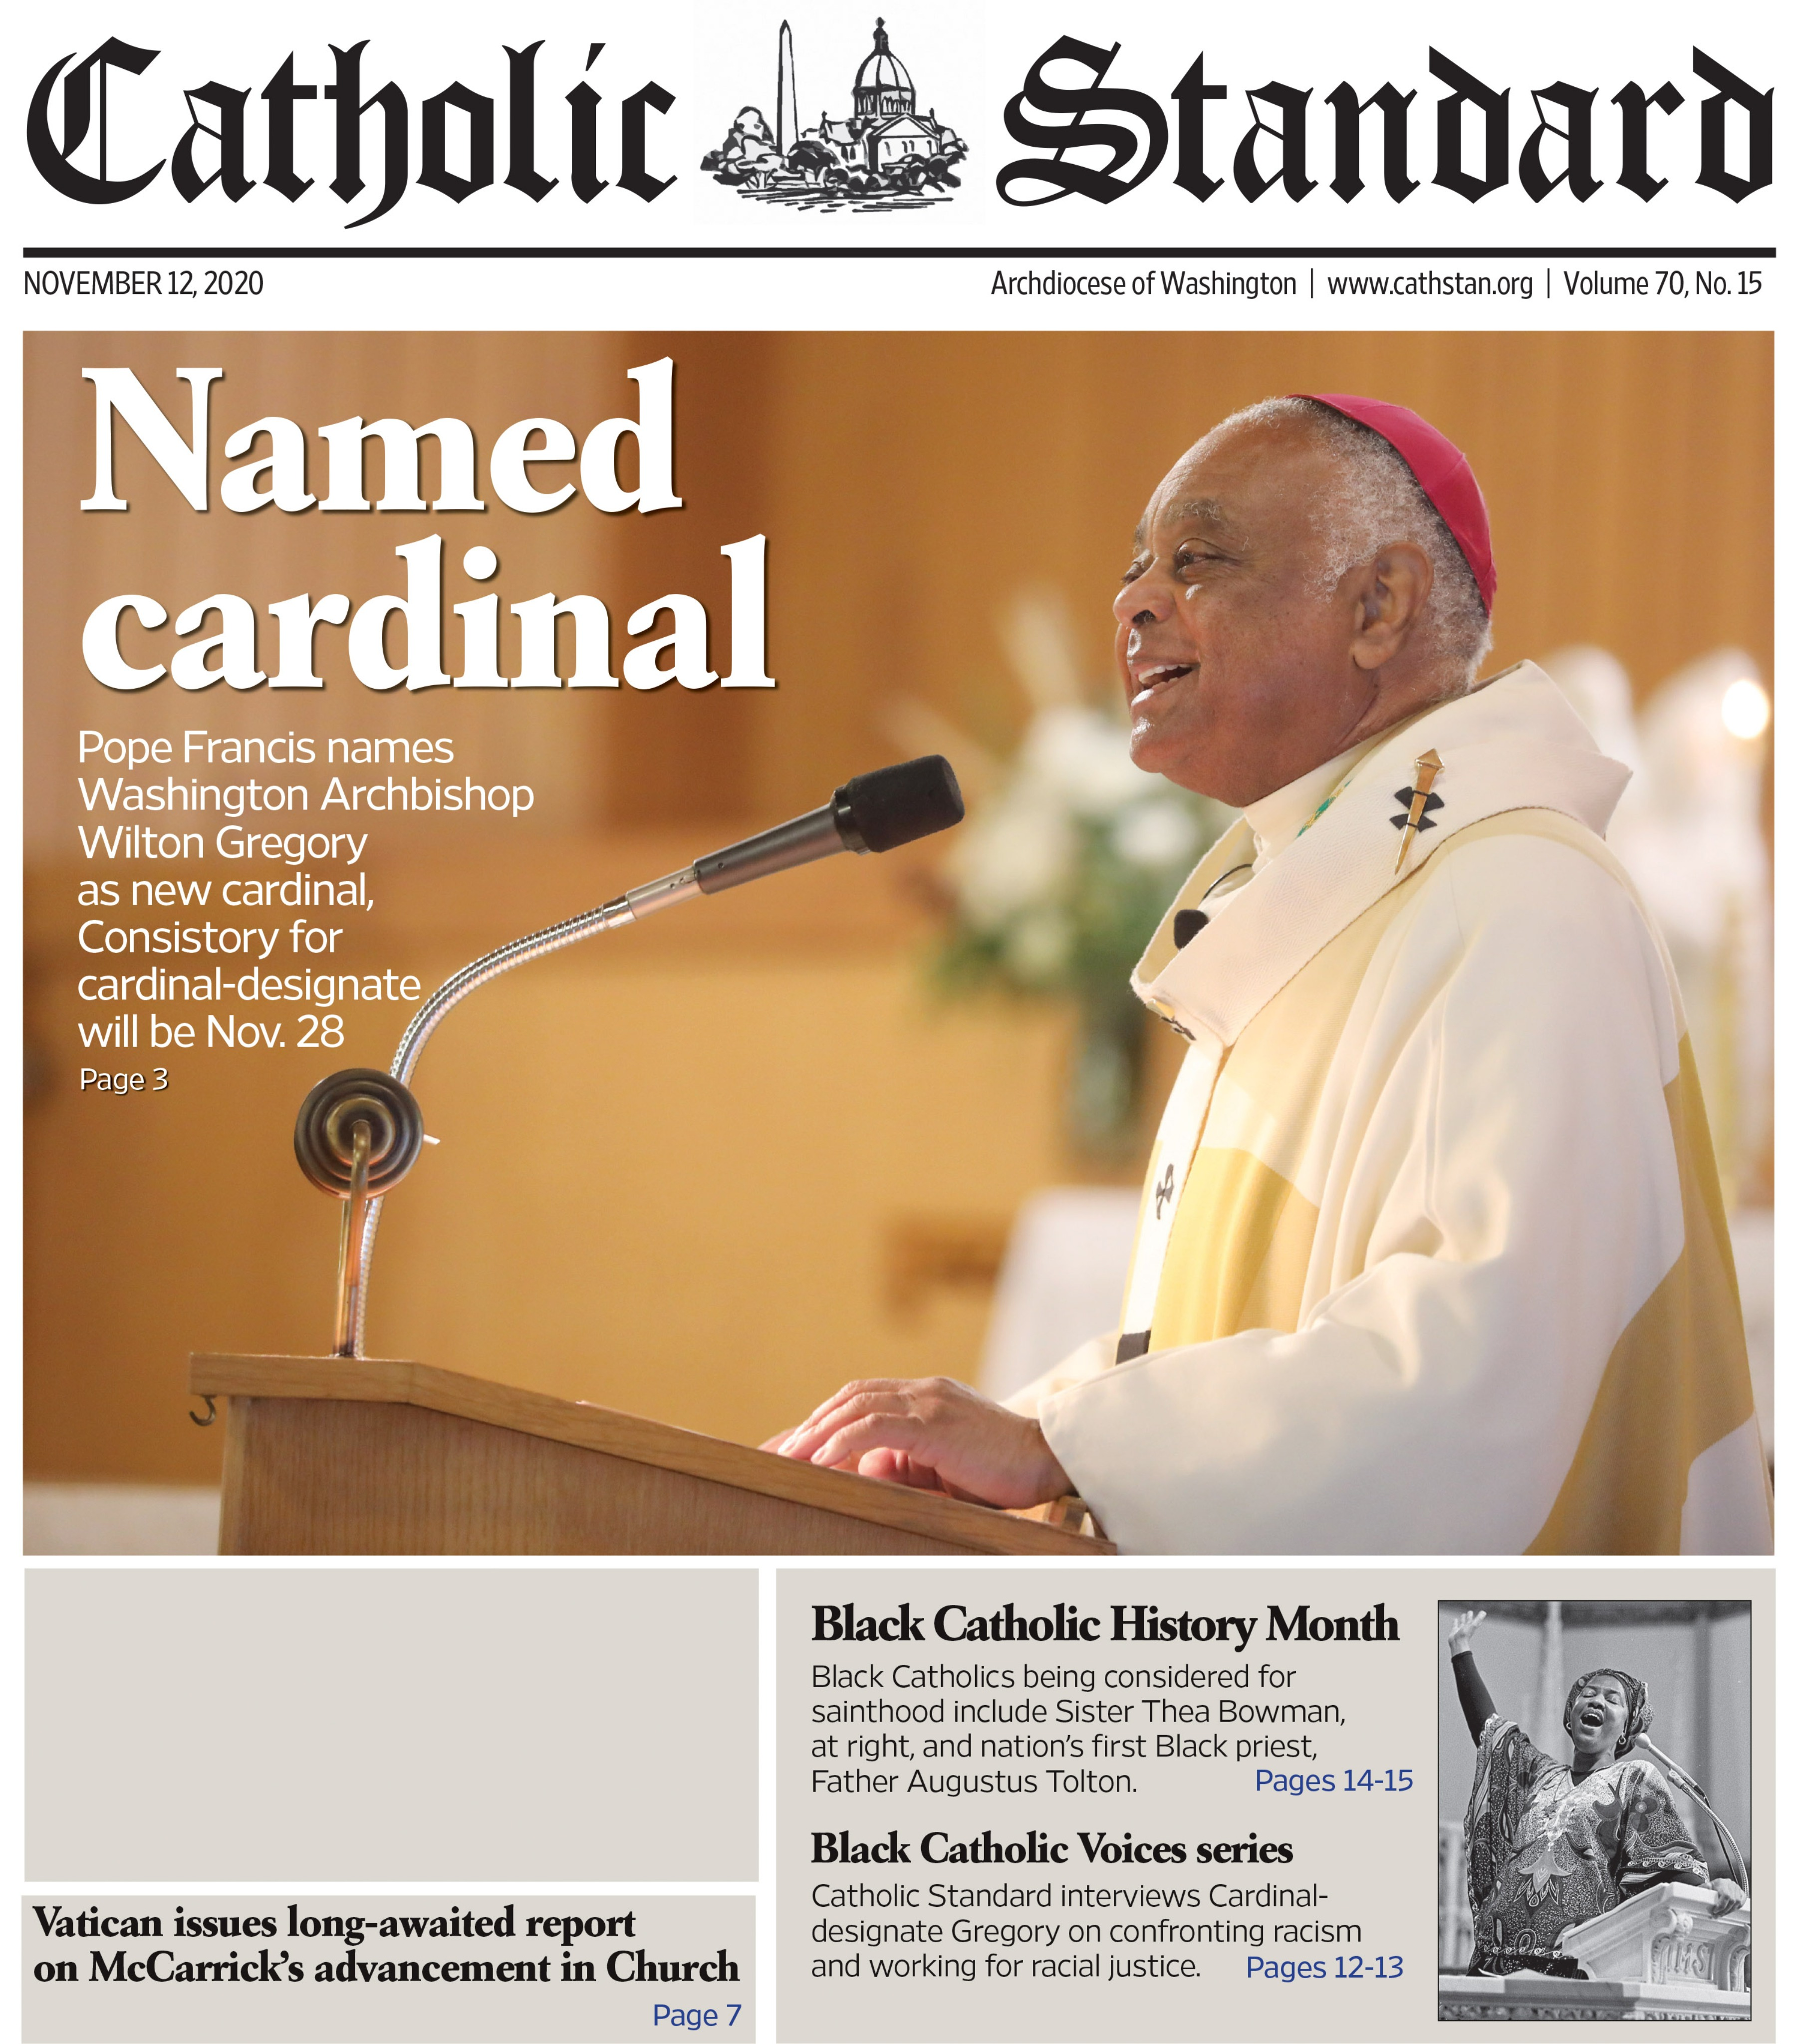 Catholic Standard I November 12, 2020